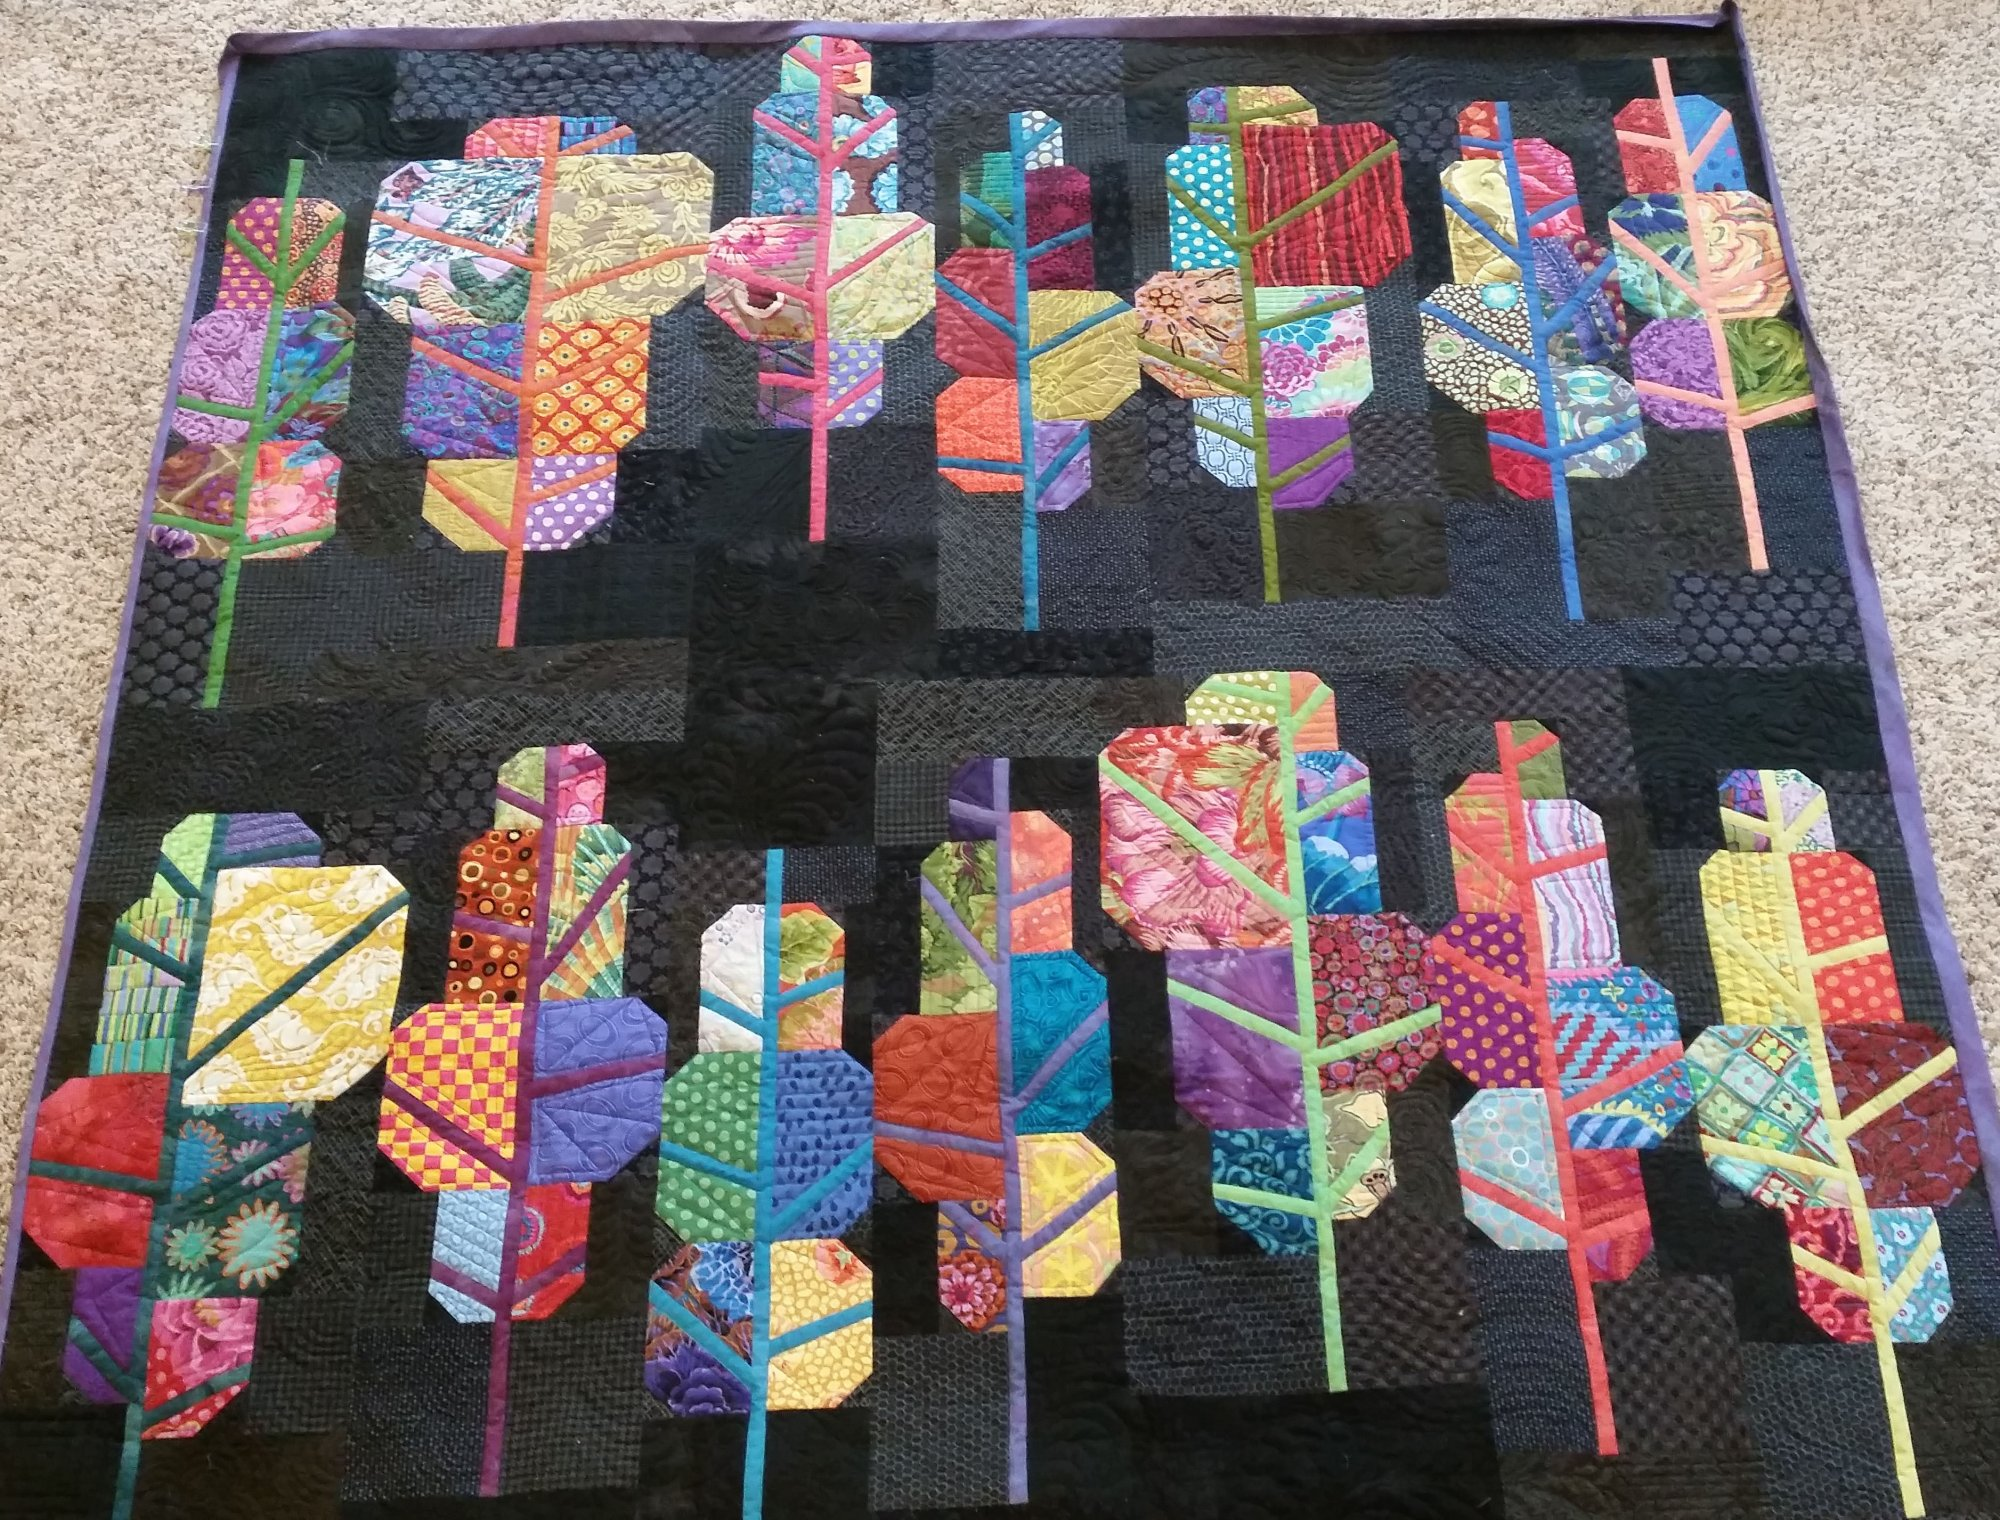 flannel patterns cahust download quilt com of images forest